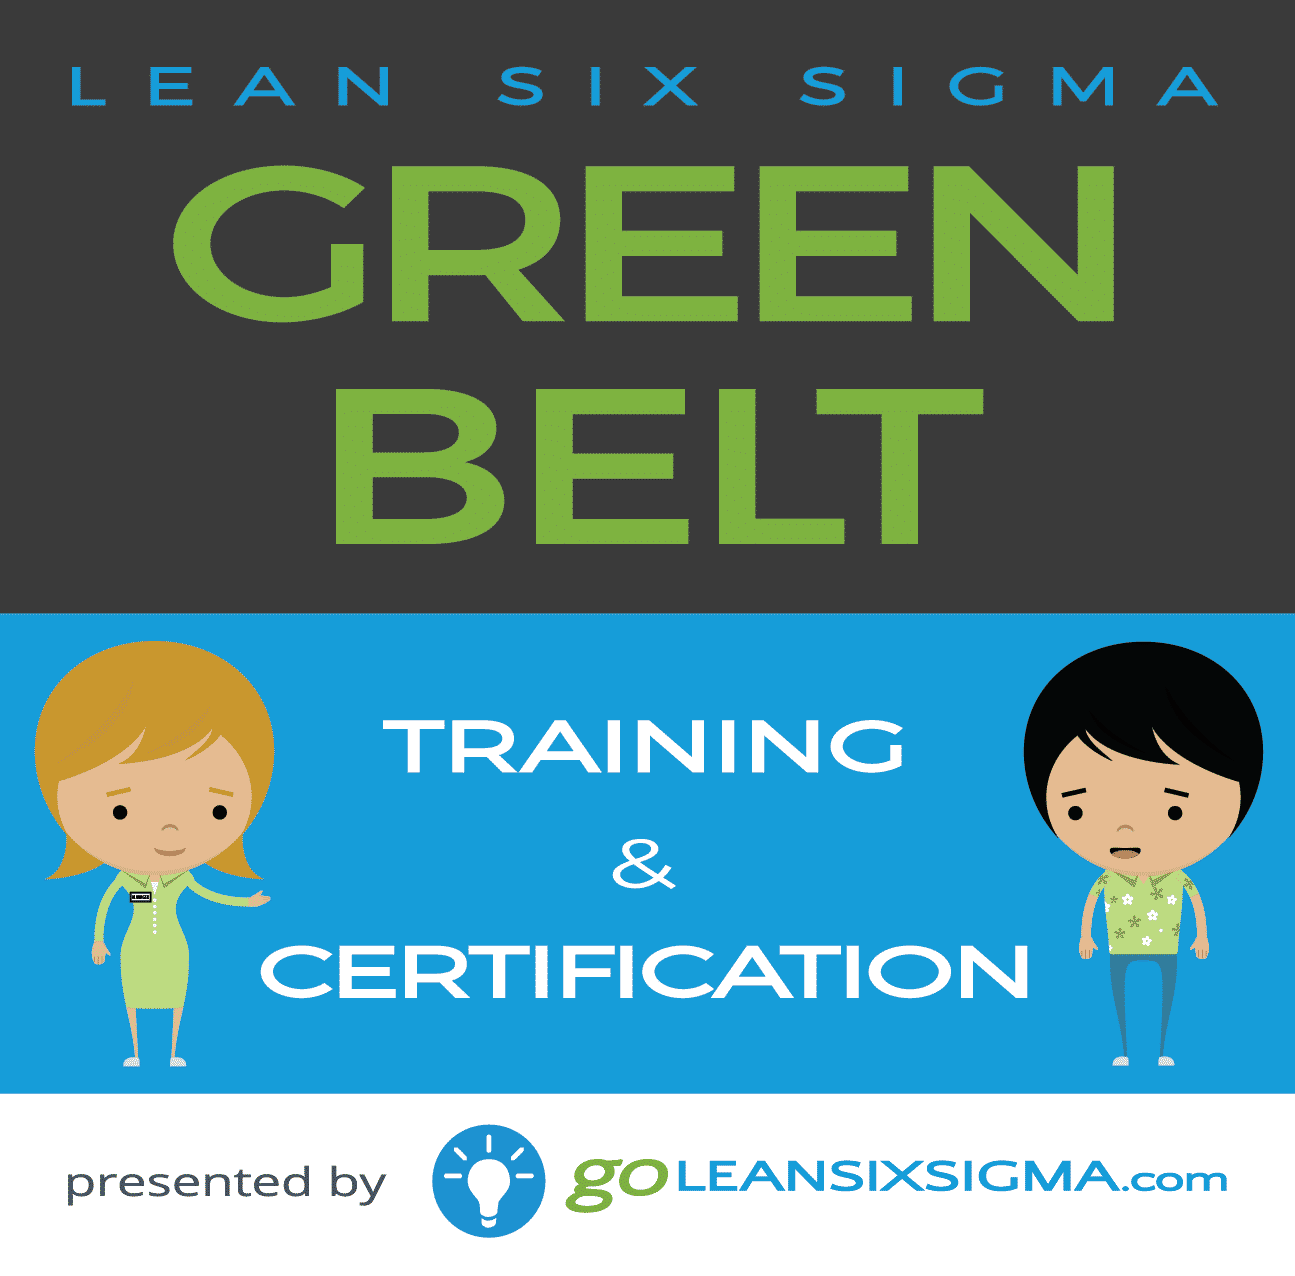 Box Training Certification Green BeltGoLeanSixSigma.com